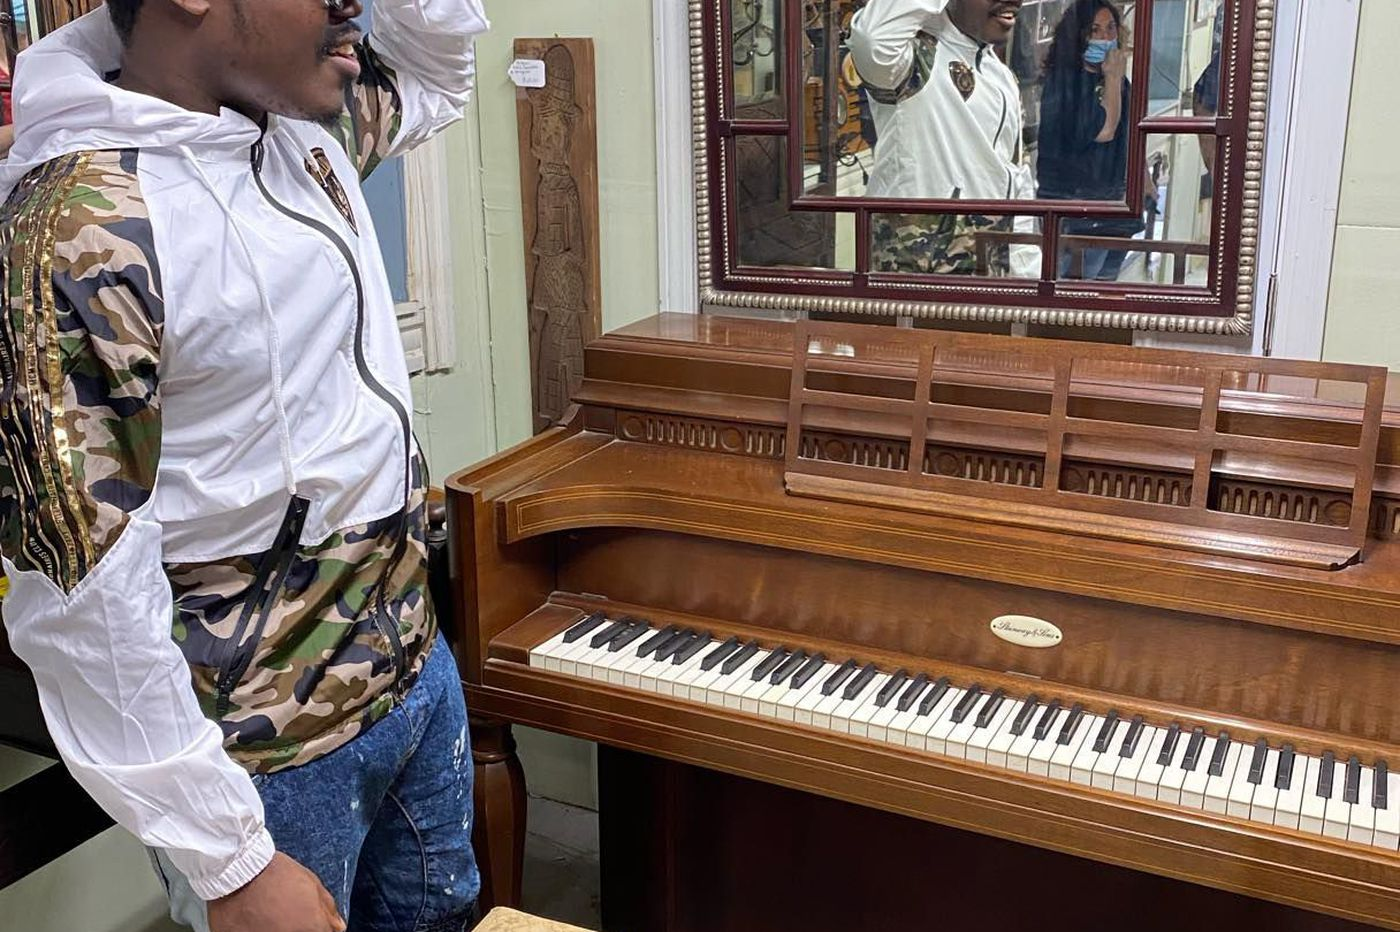 An impromptu performance leads to a gift of a vintage Steinway piano